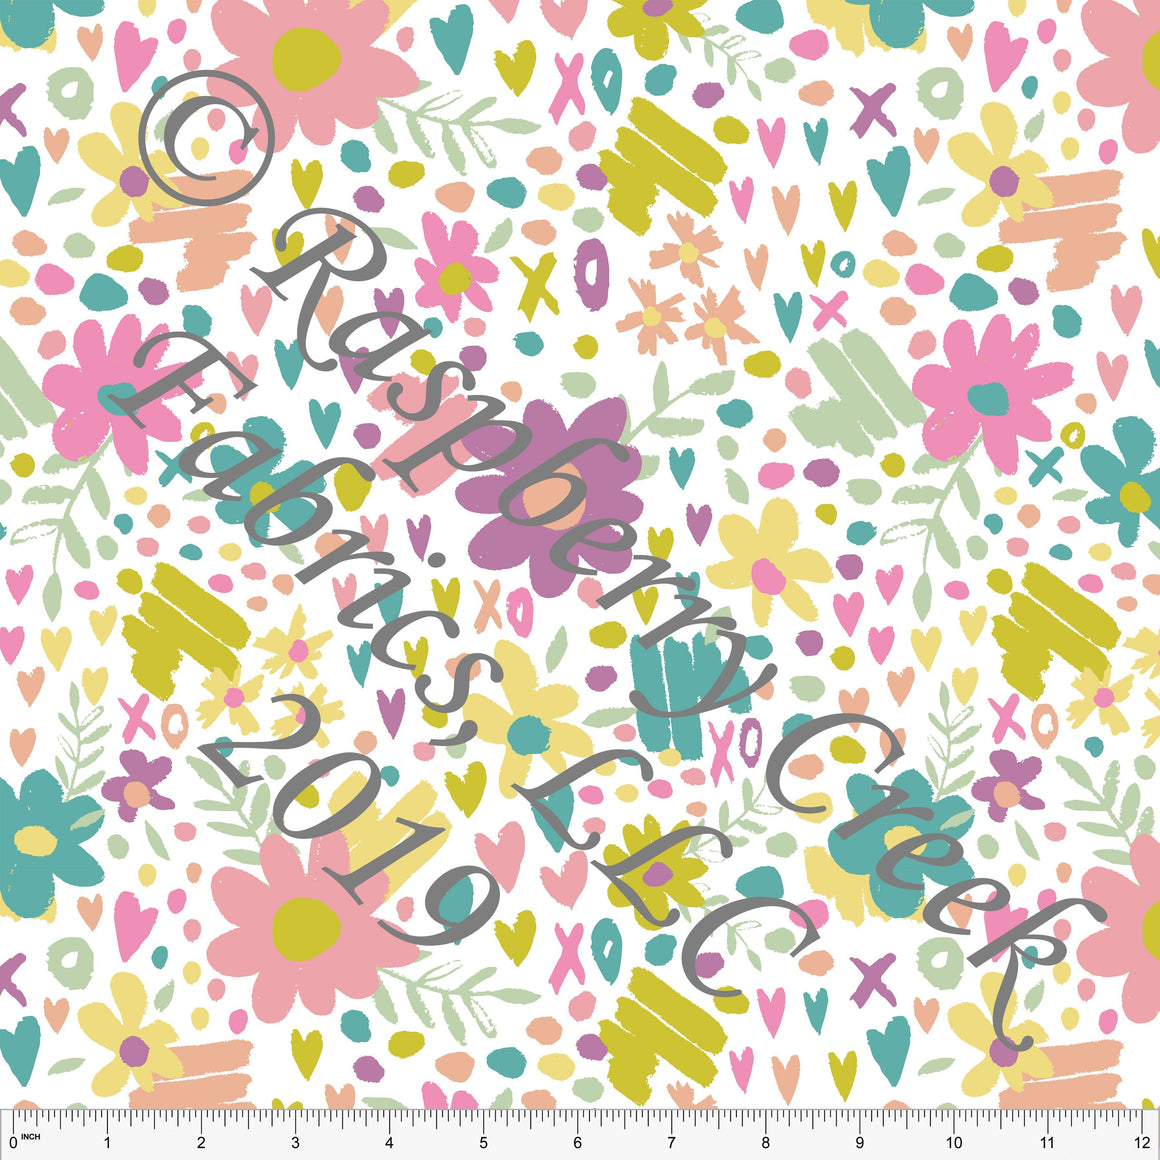 Seafoam Peach Sage and Salmon Butterfly Kisses Heart Floral, By Kimberly Henrie for Club Fabrics - Raspberry Creek Fabrics